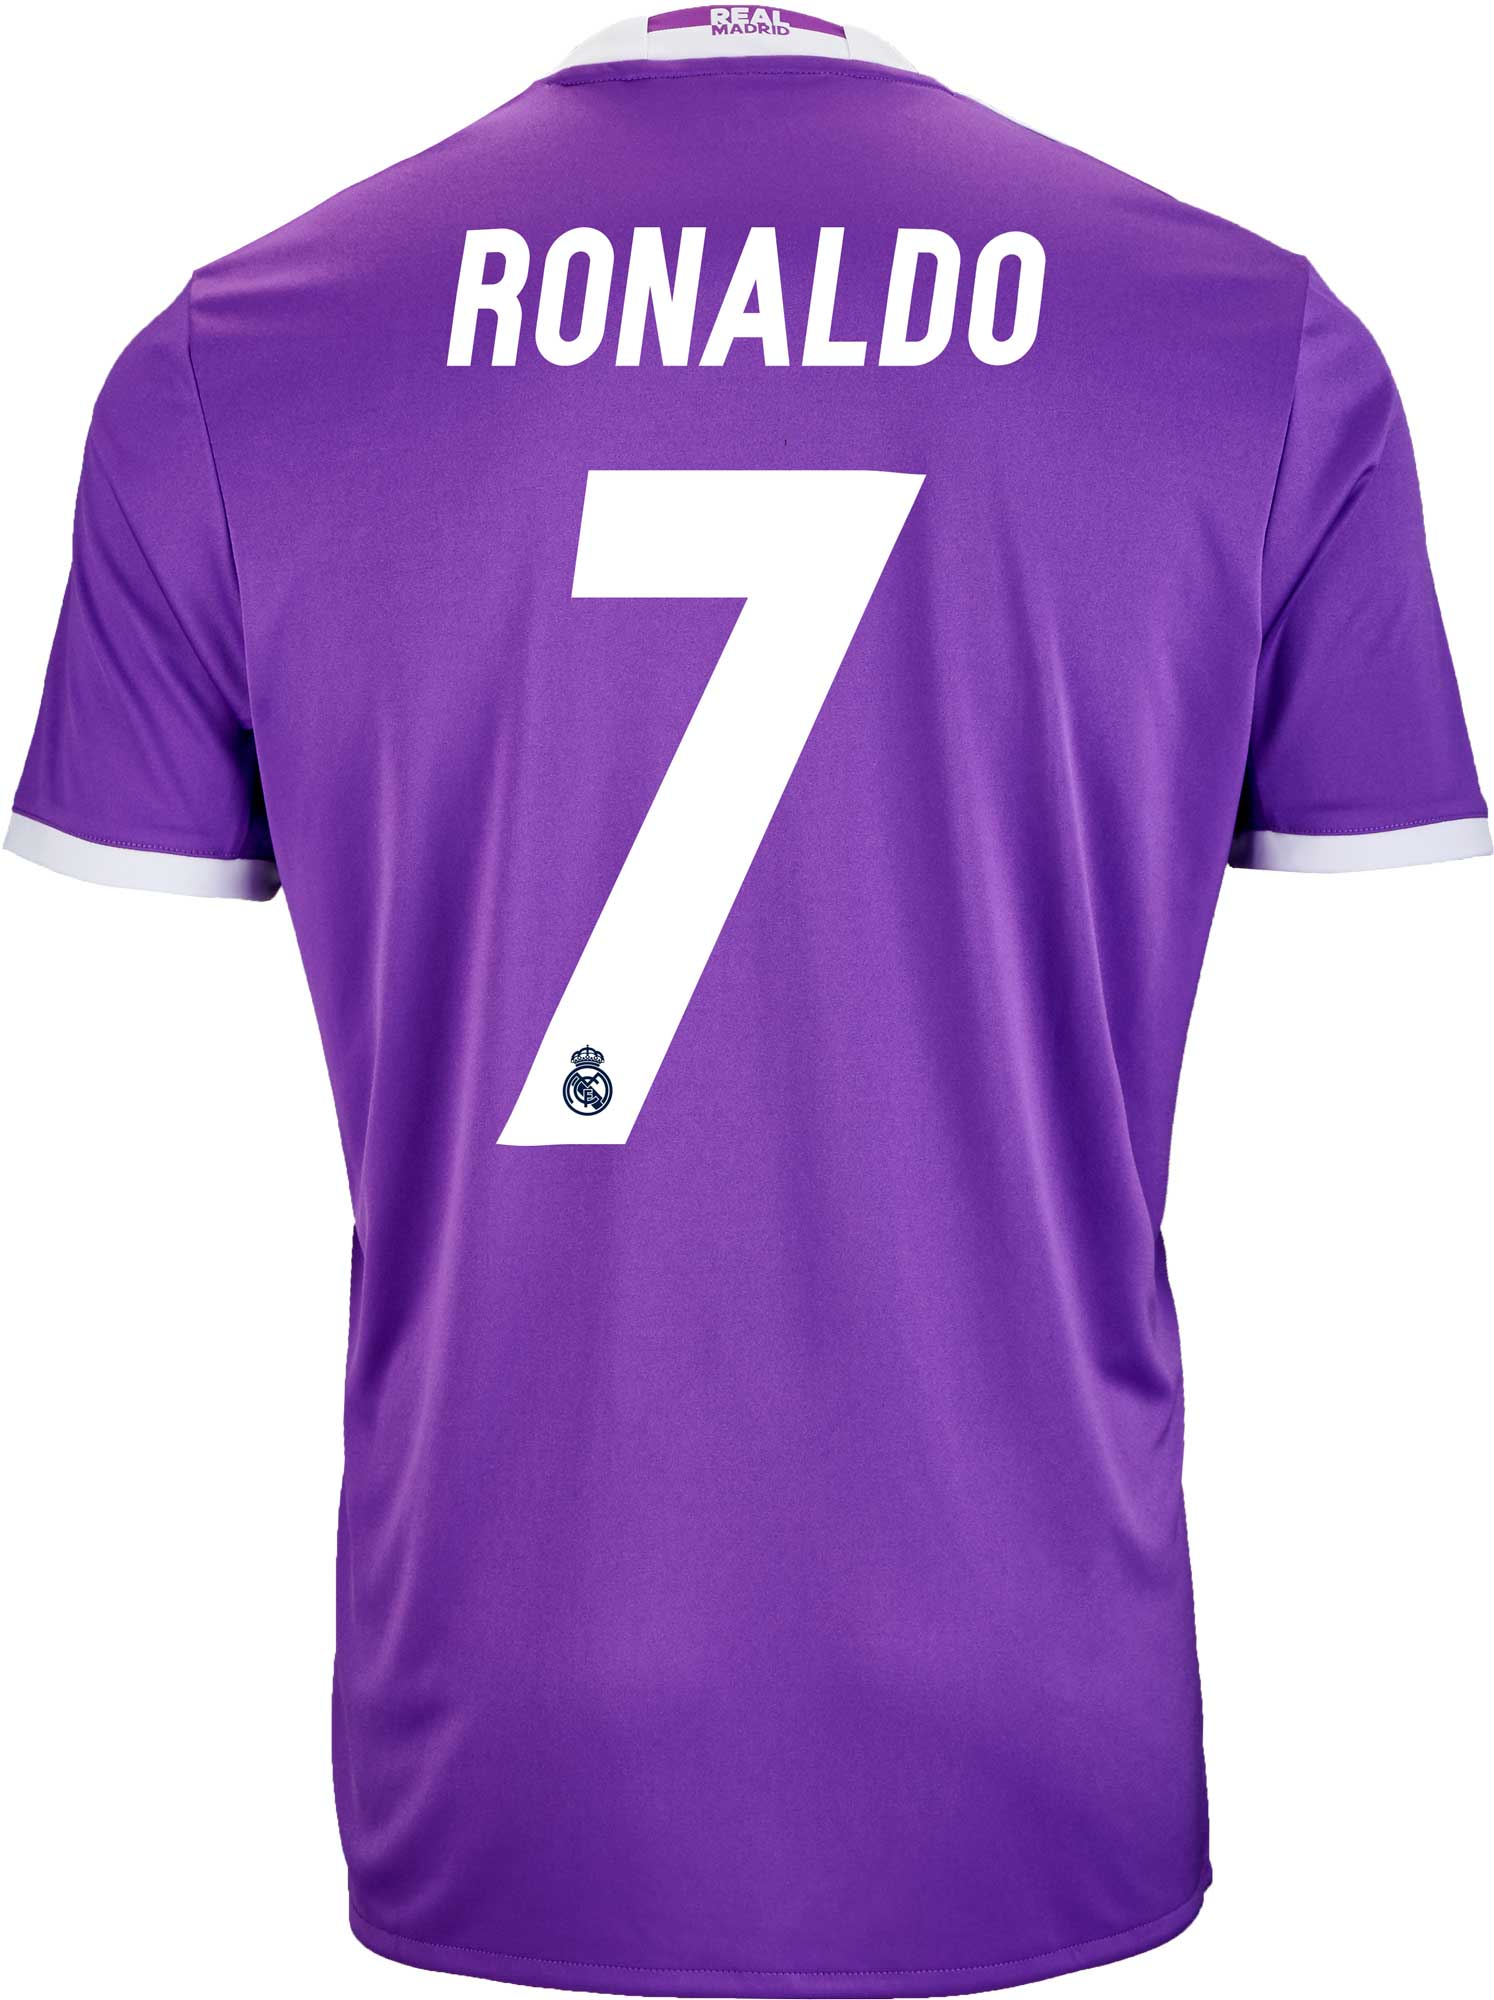 super popular 50fc4 f12f1 adidas Ronaldo Real Madrid Jersey - 2016 Real Madrid Jerseys